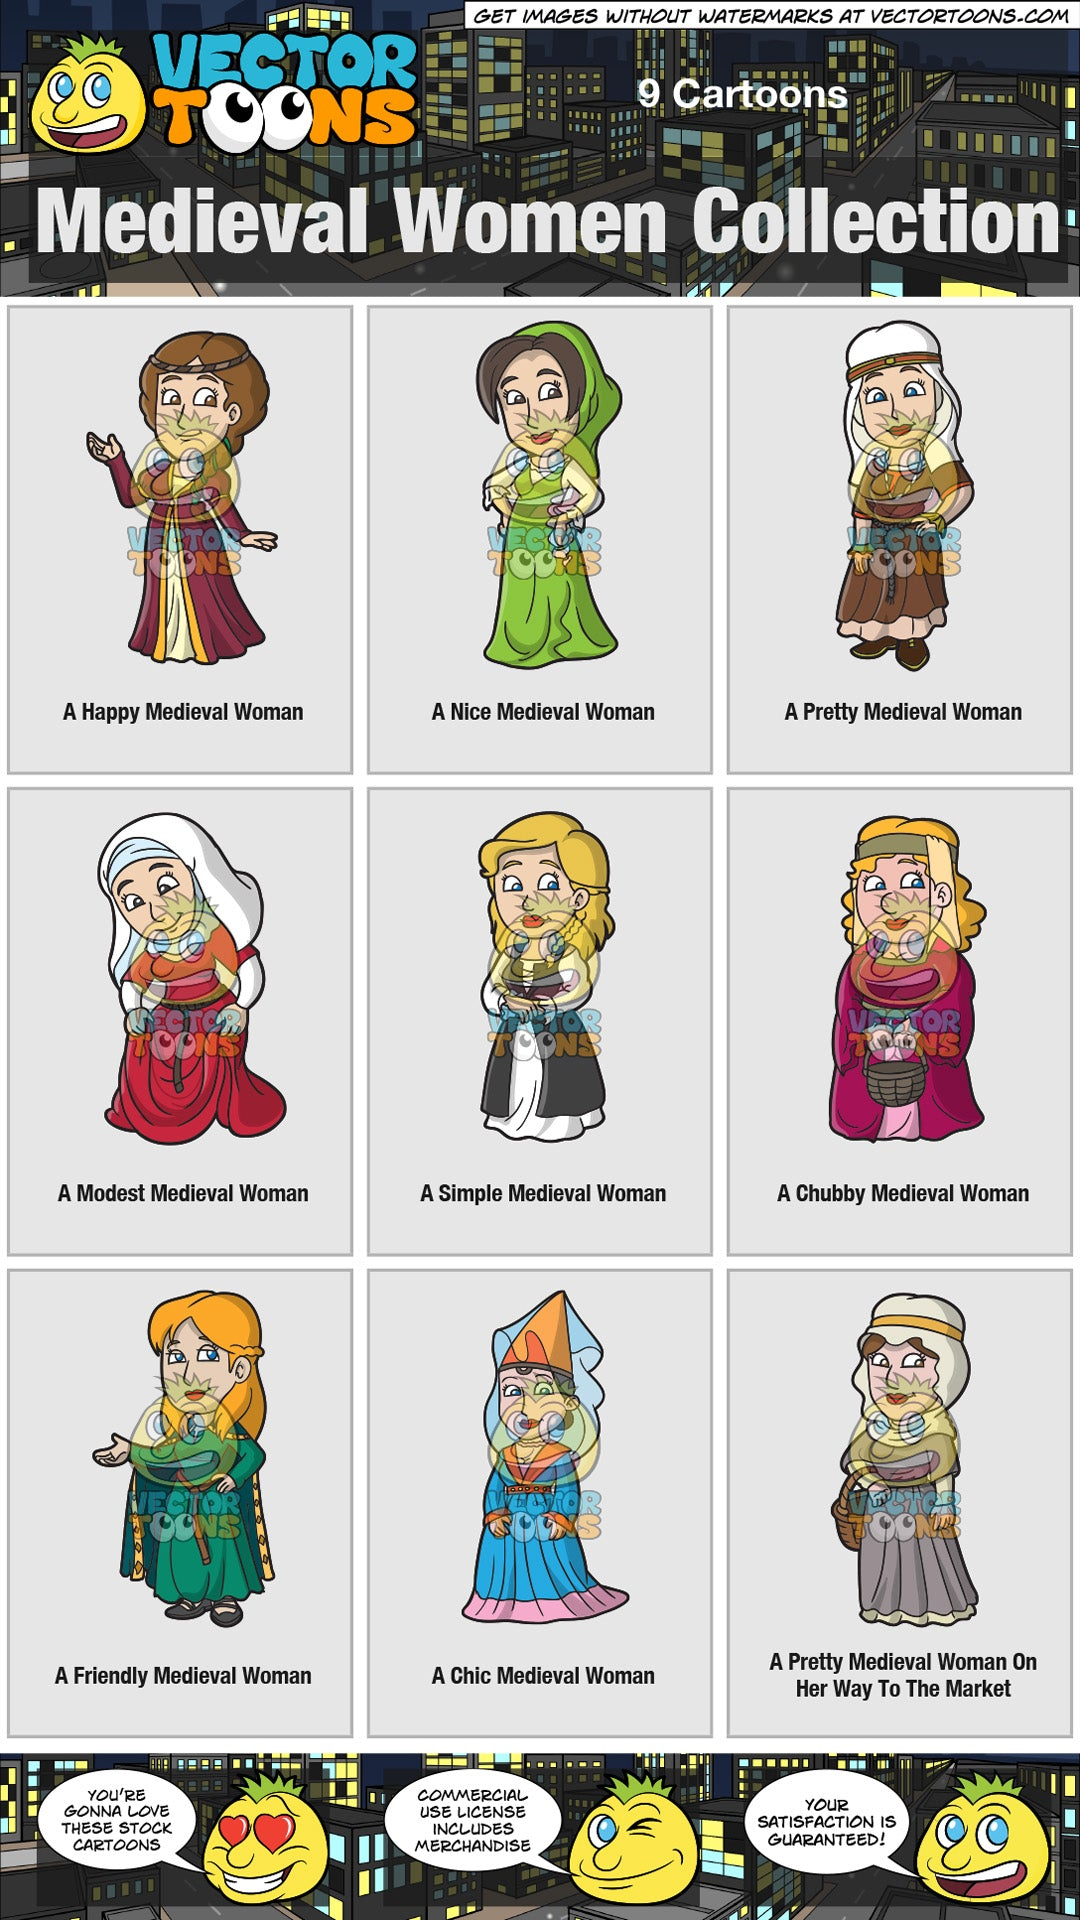 Medieval Women Collection